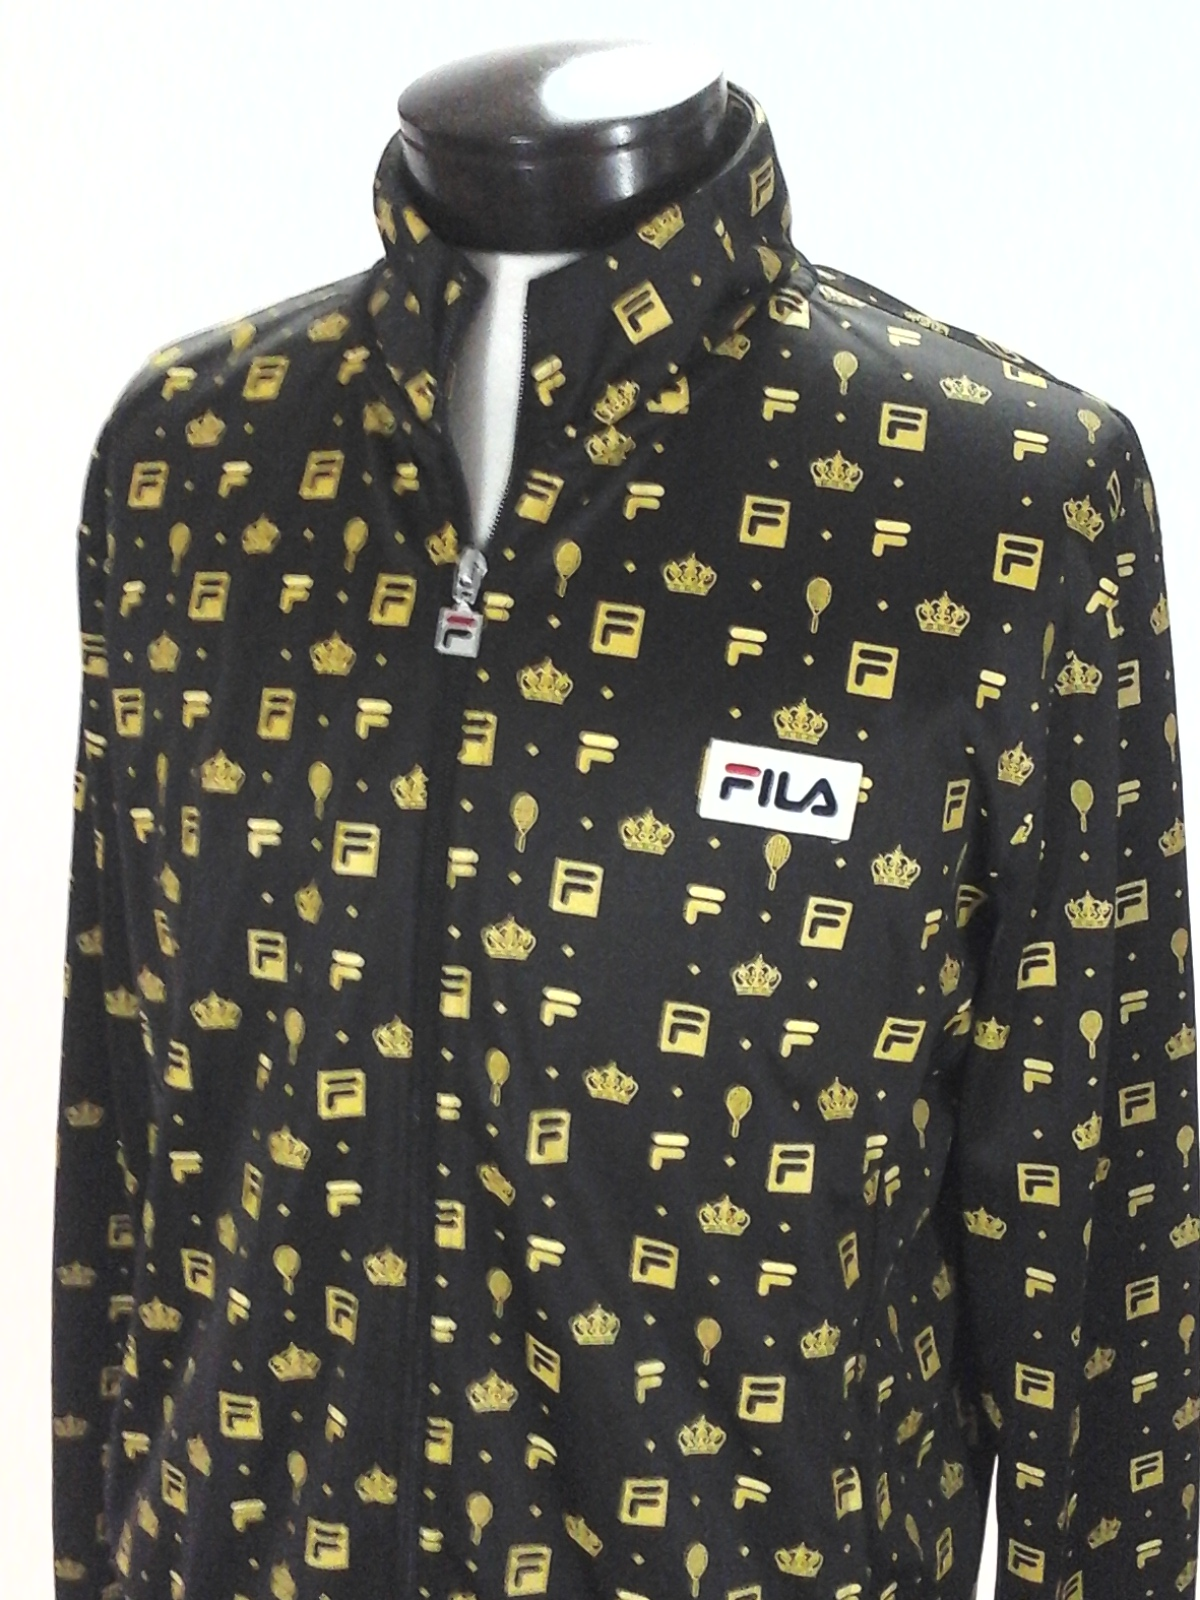 85848aec2487 FILA Track Jacket for UO Brown/Gold Tennis Racket/Crown Print Zip Up Mens L  RARE